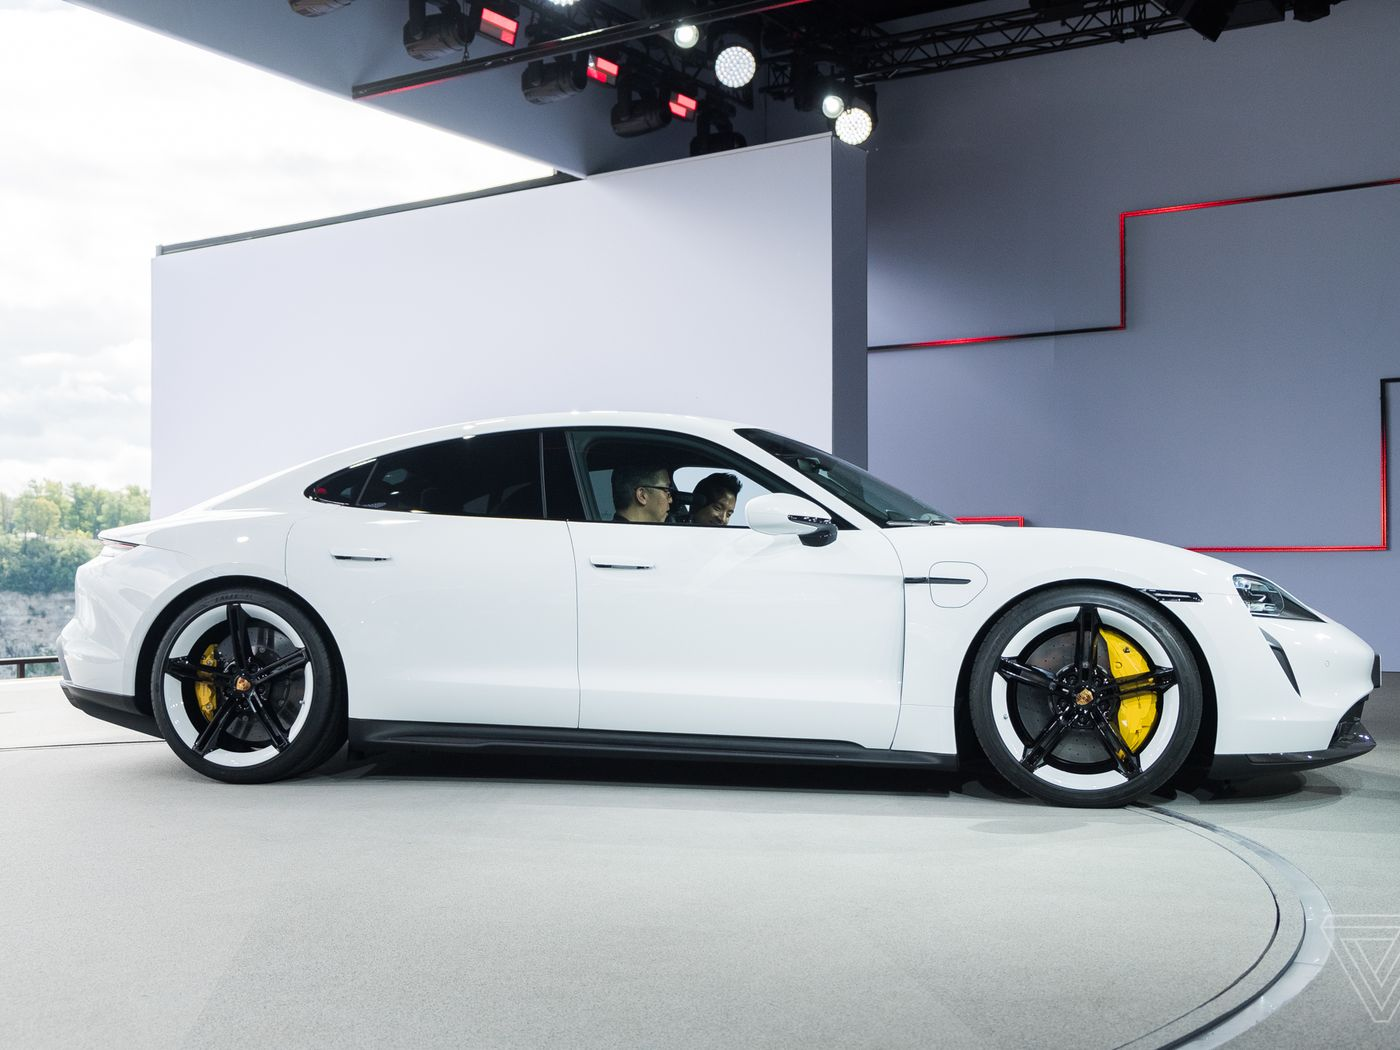 Up close with the Taycan, Porsche's first electric car